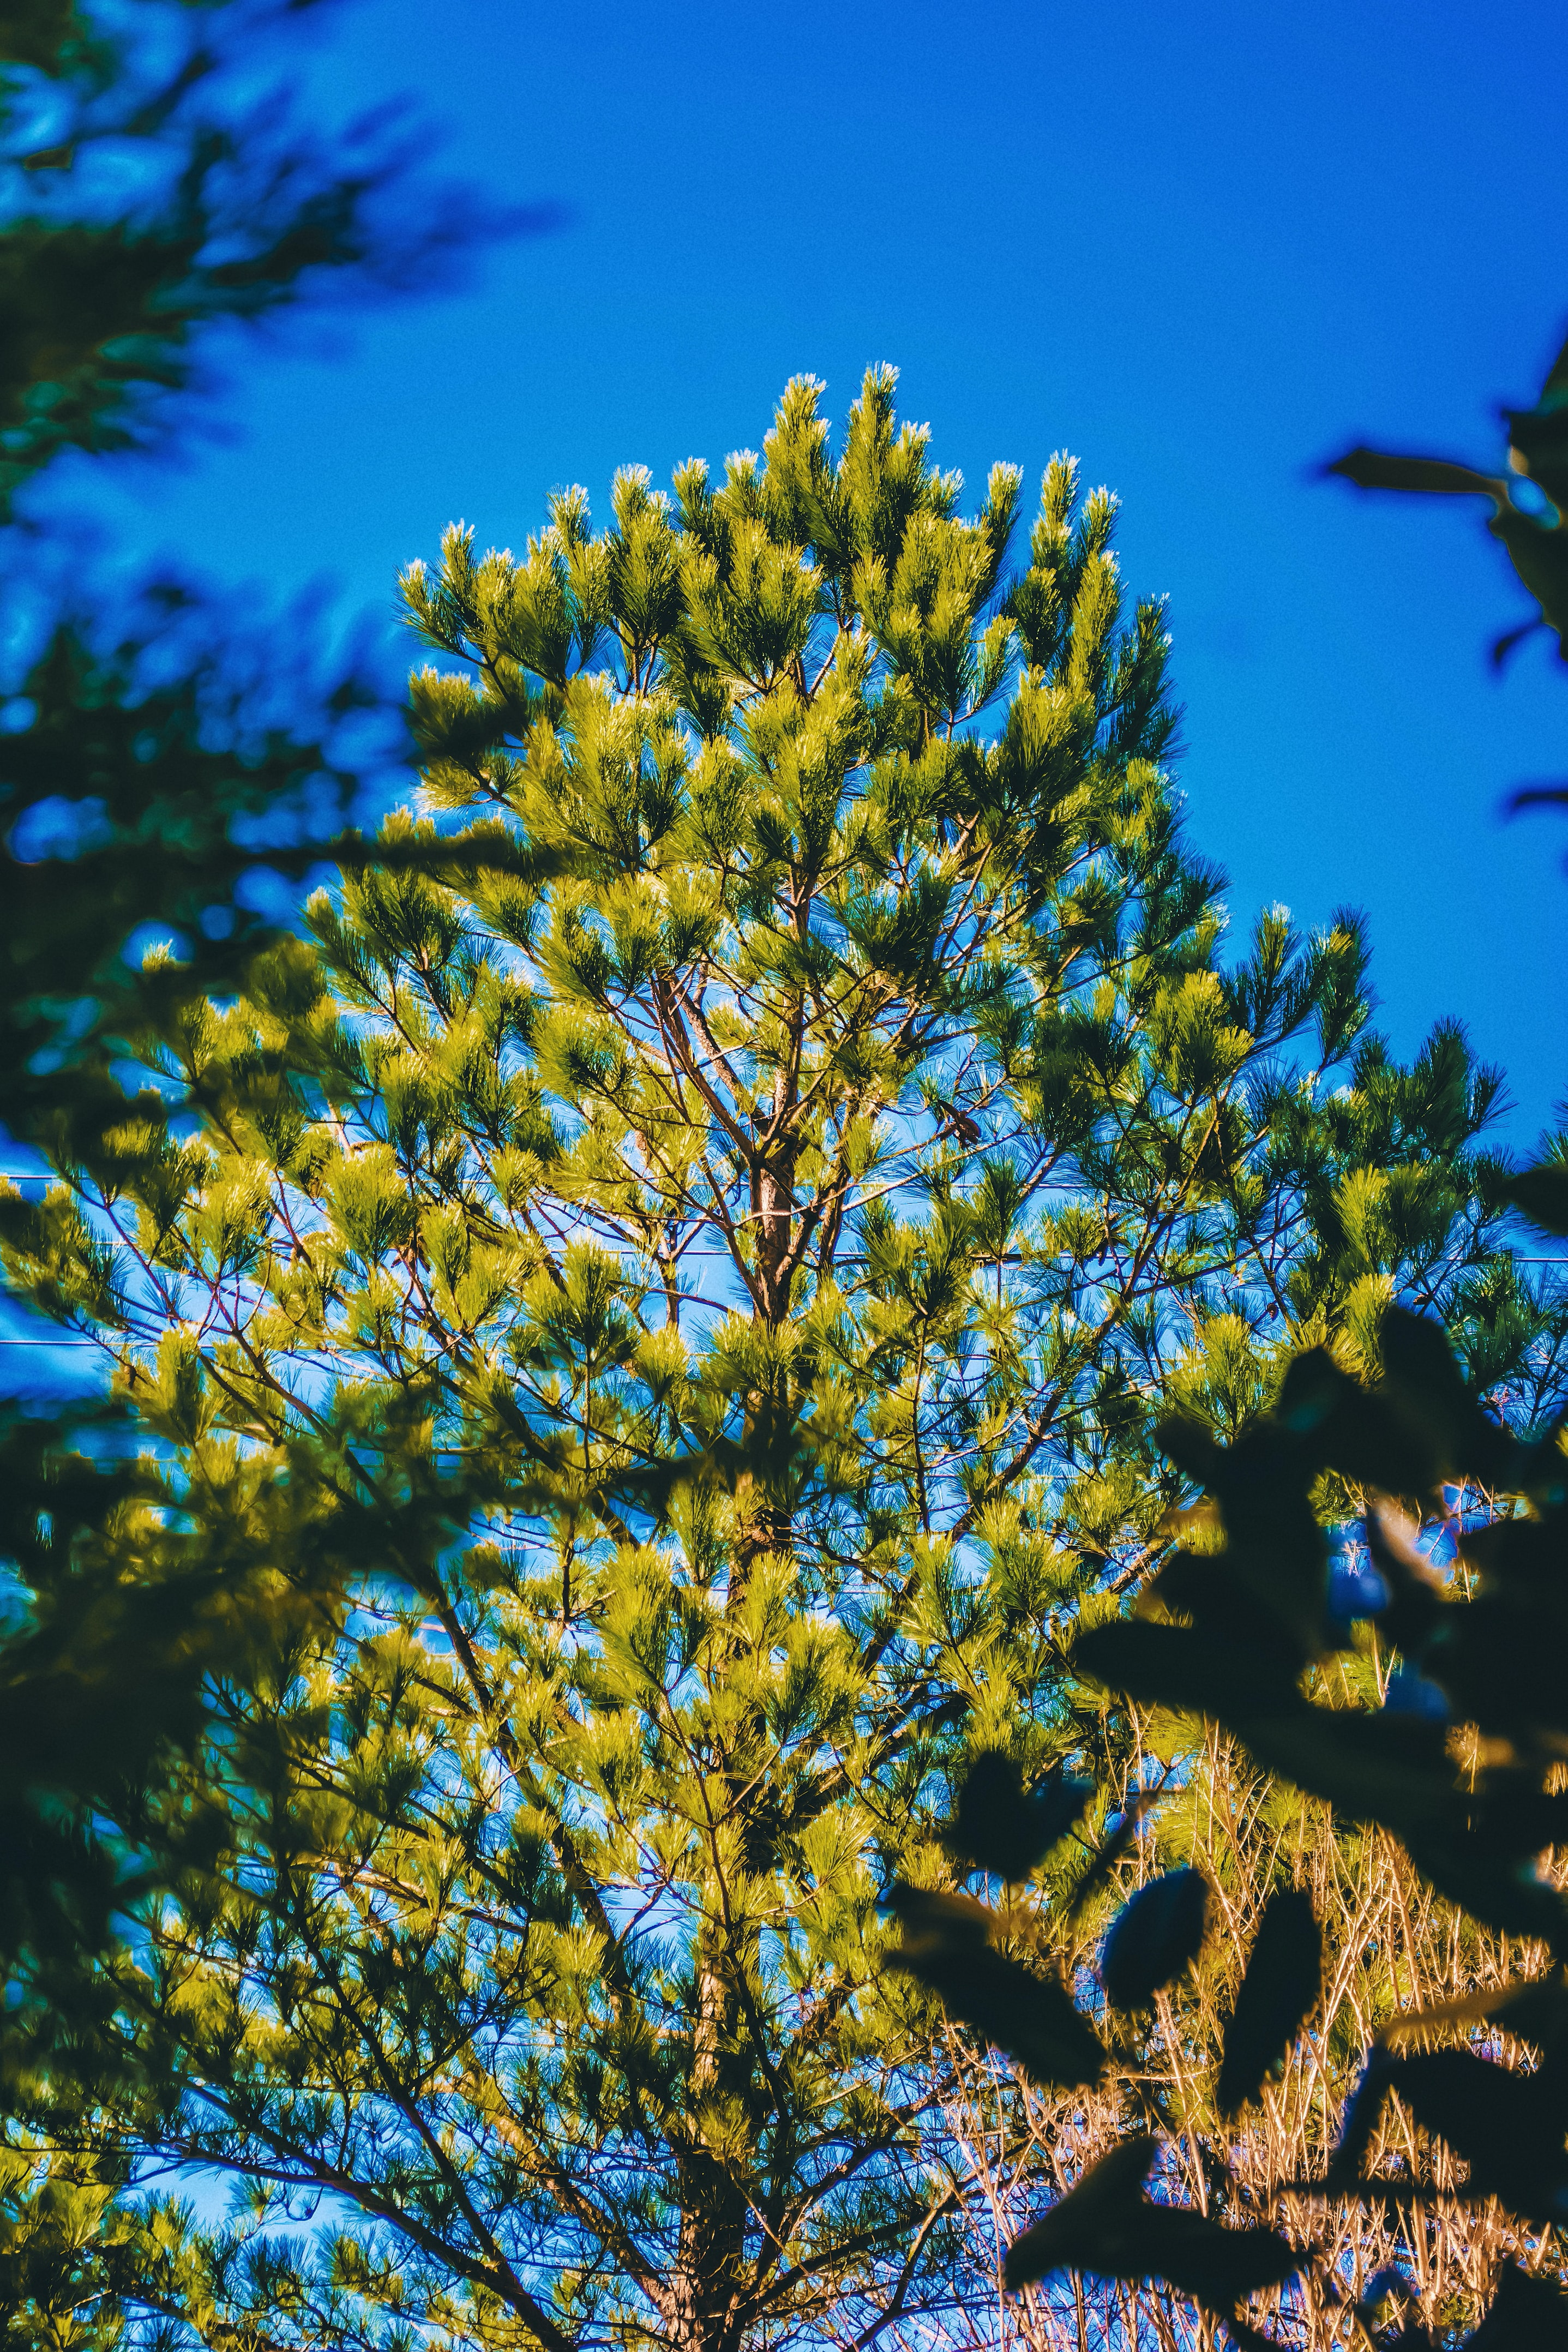 shallow focus photography of green leafed tree under clear blue sky